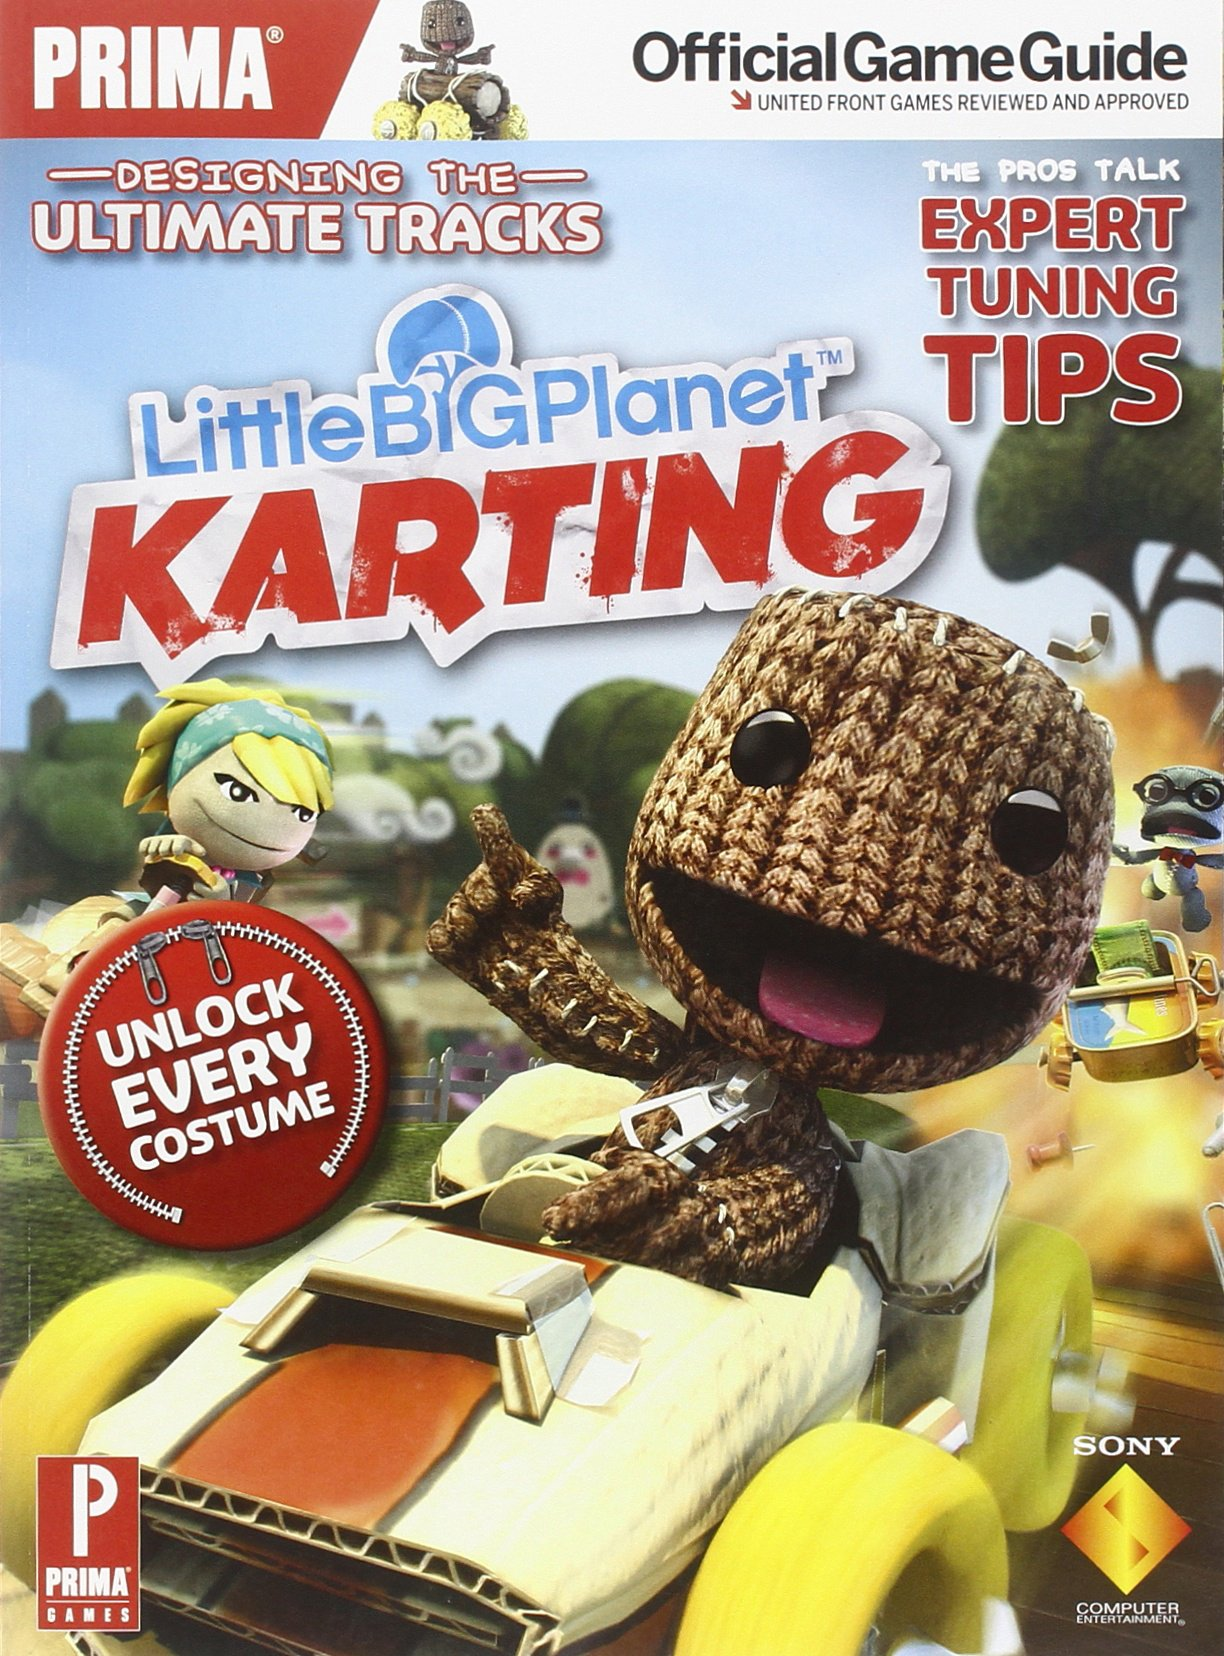 LittleBigPlanet: Karting Official Game Guide (Prima)